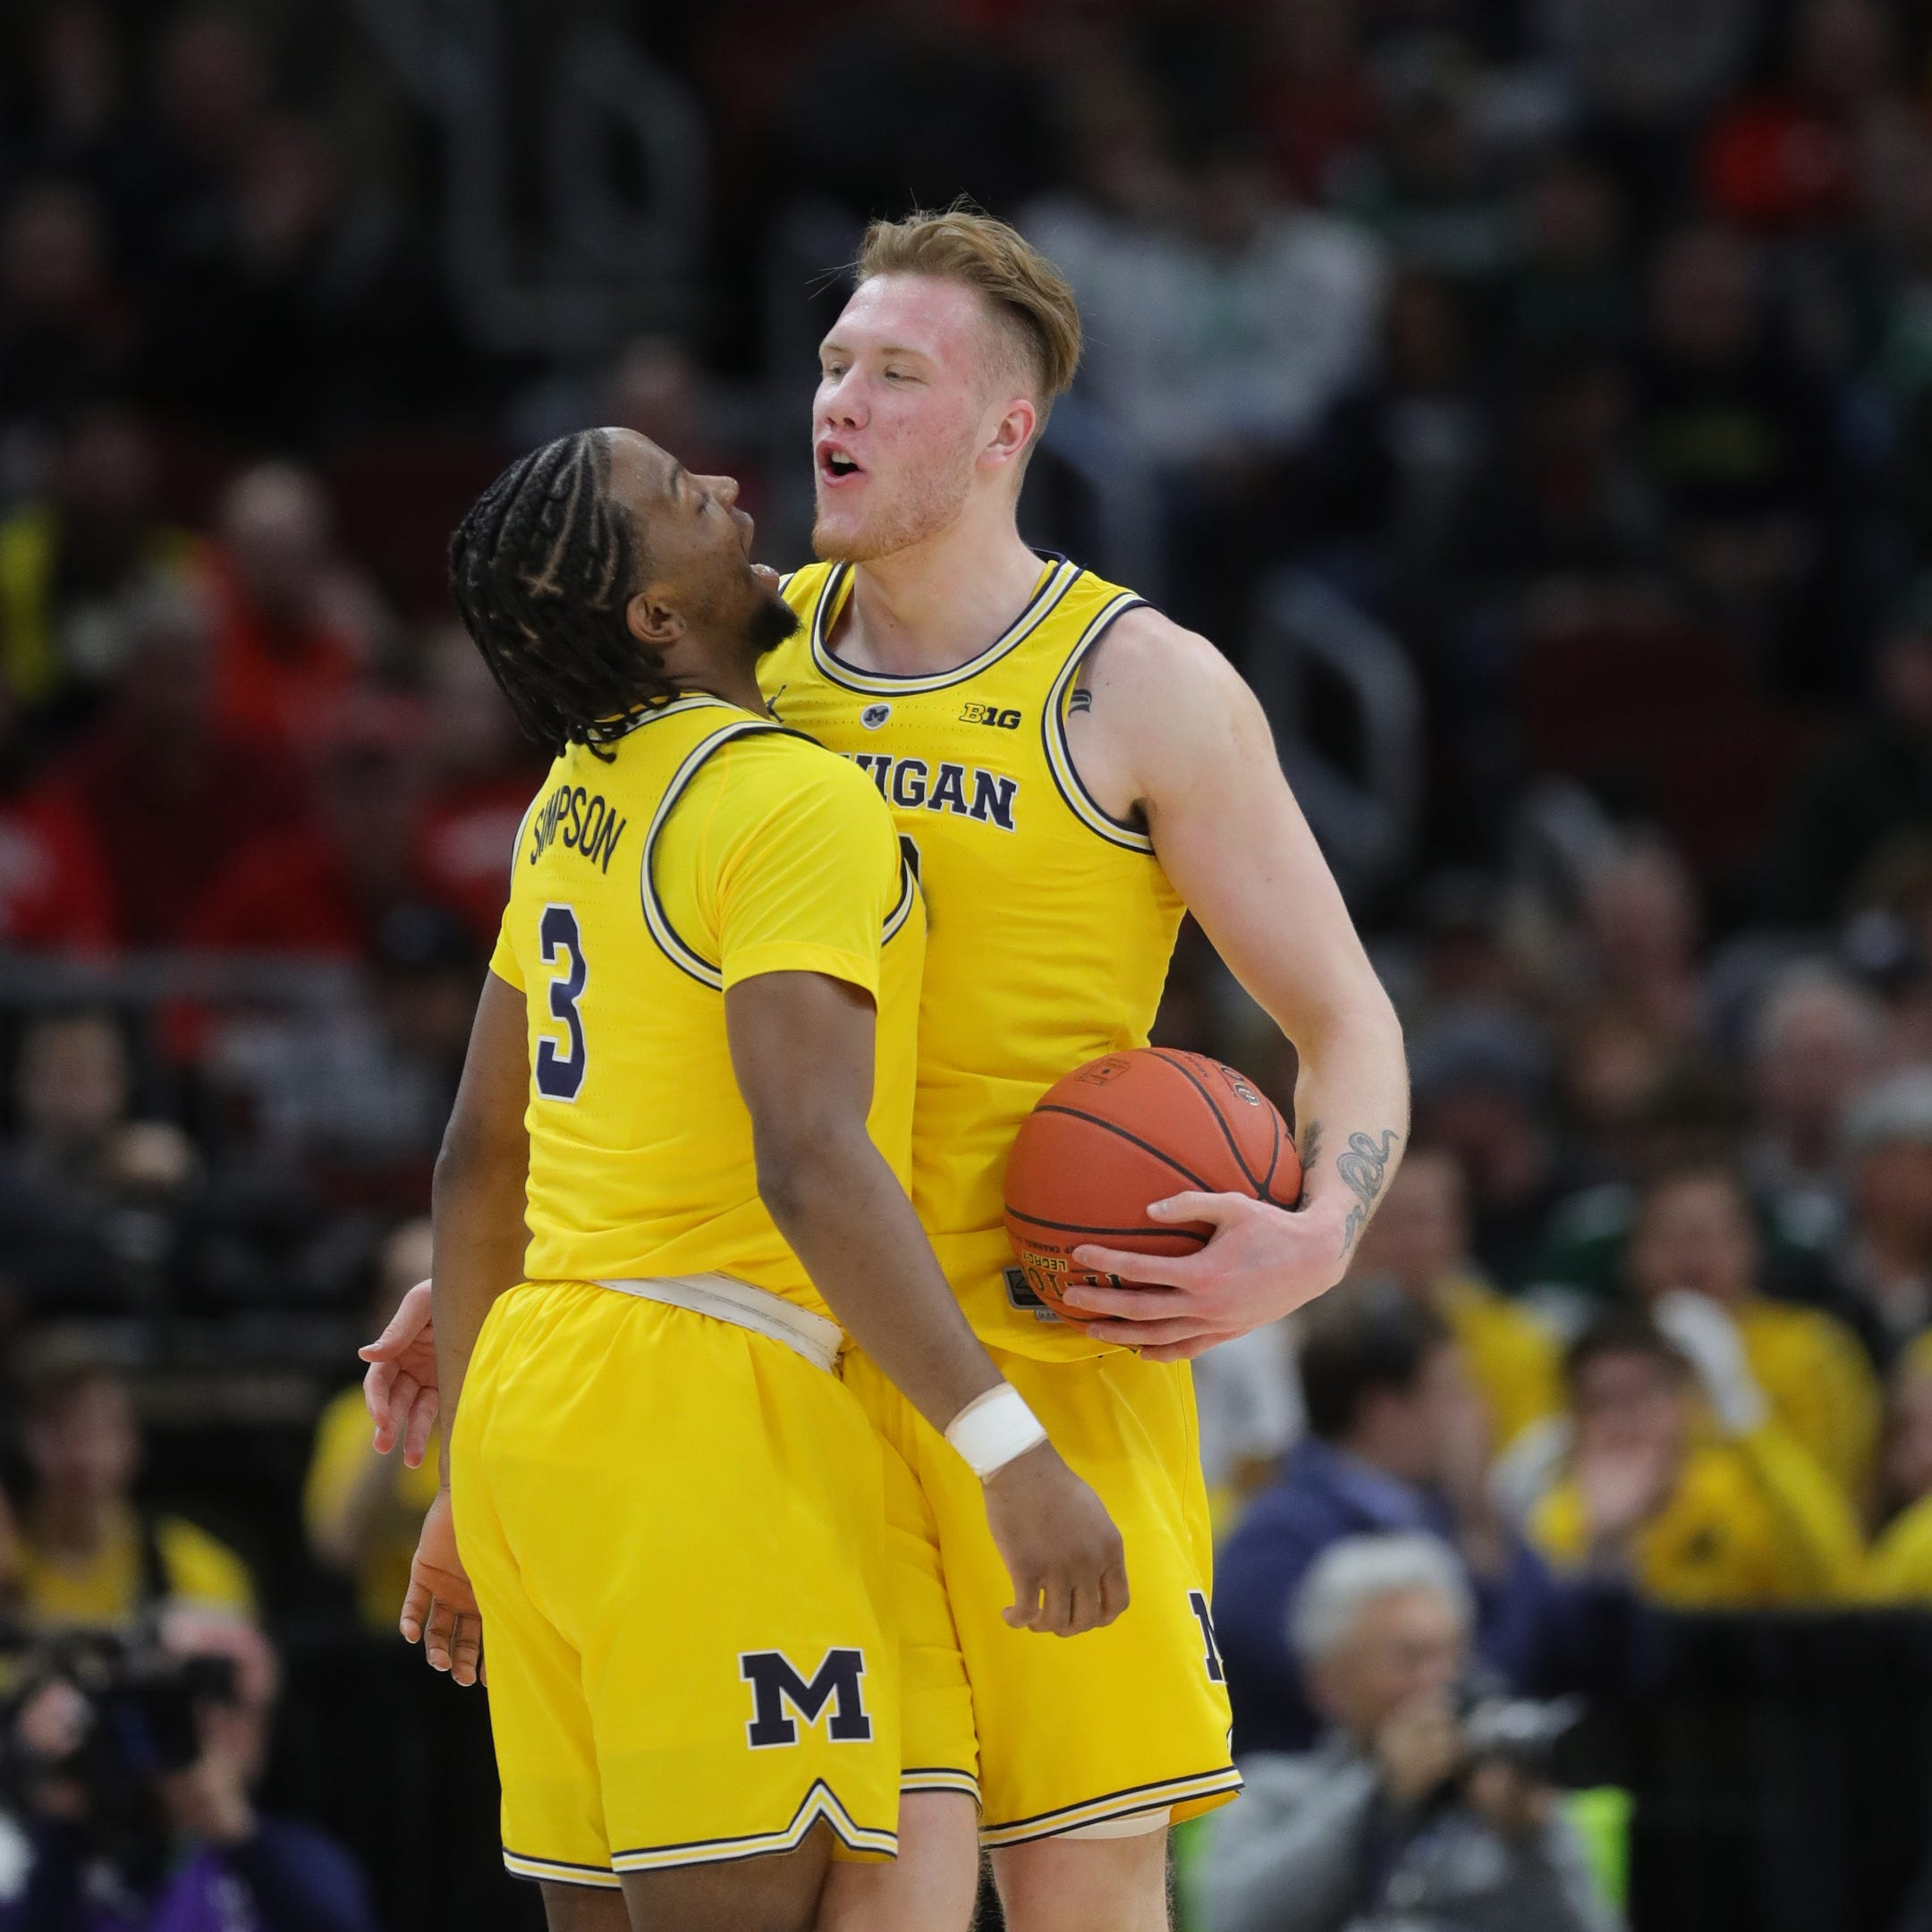 Here is Michigan basketball's path to another Final Four run